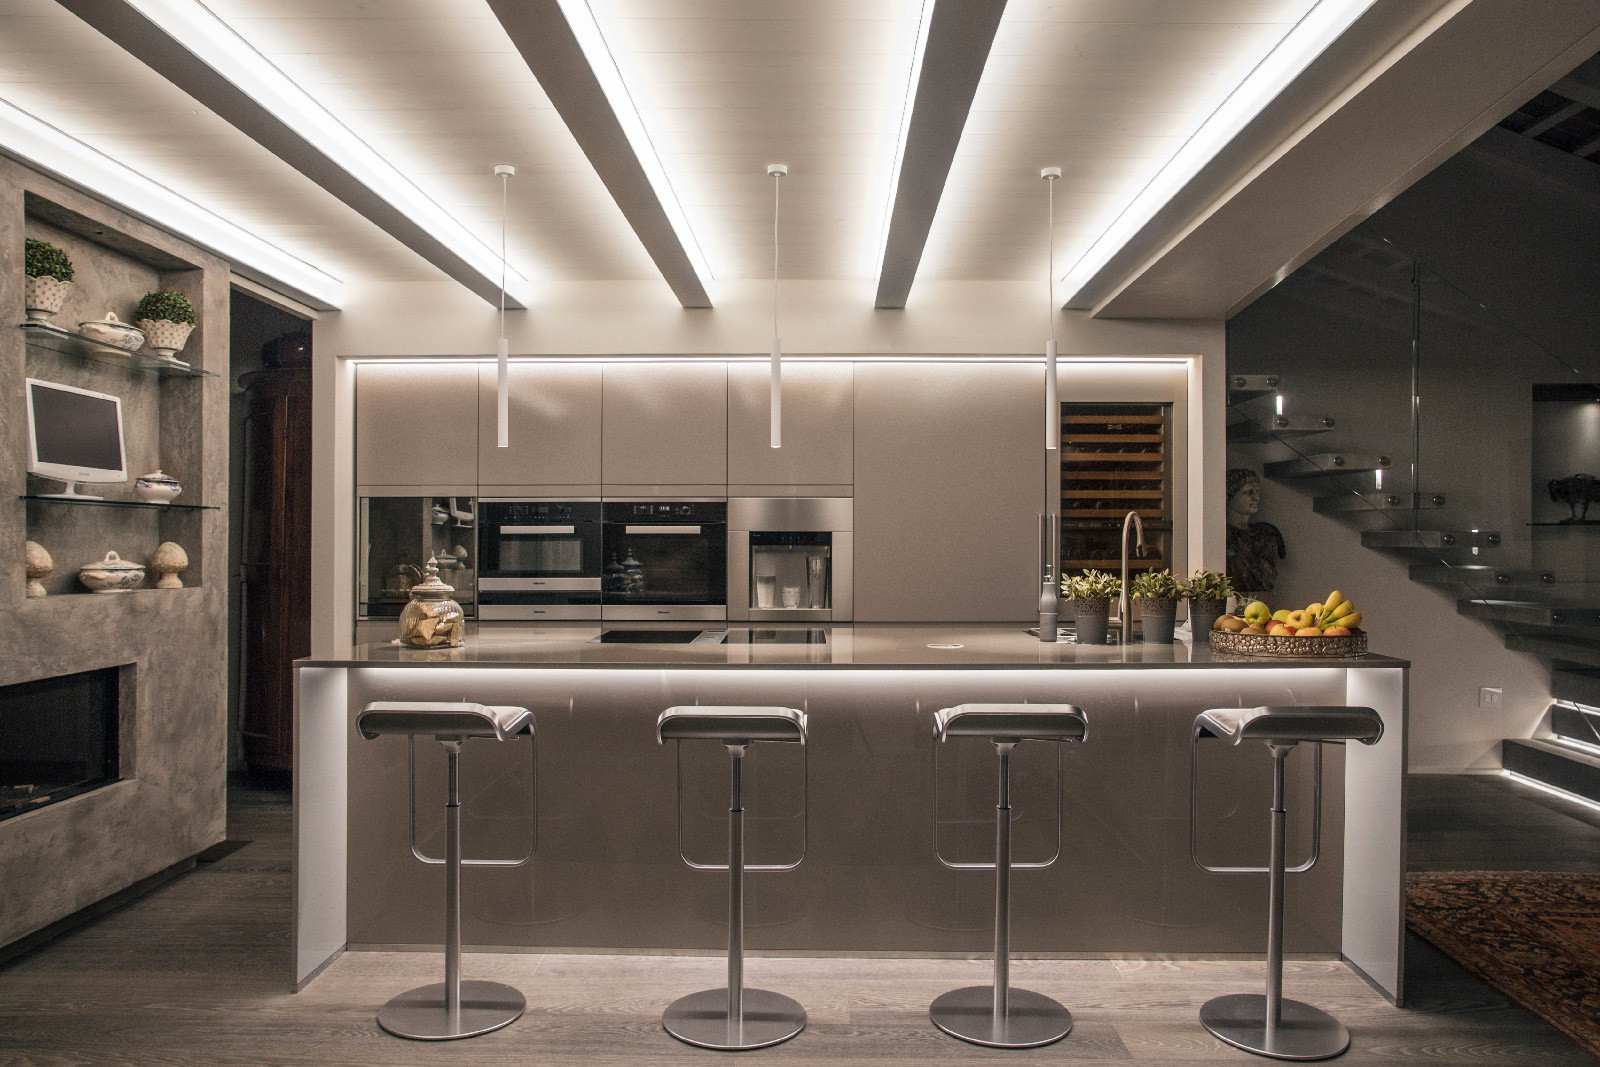 Ecco come illuminare la cucine e la zona living con le strip led